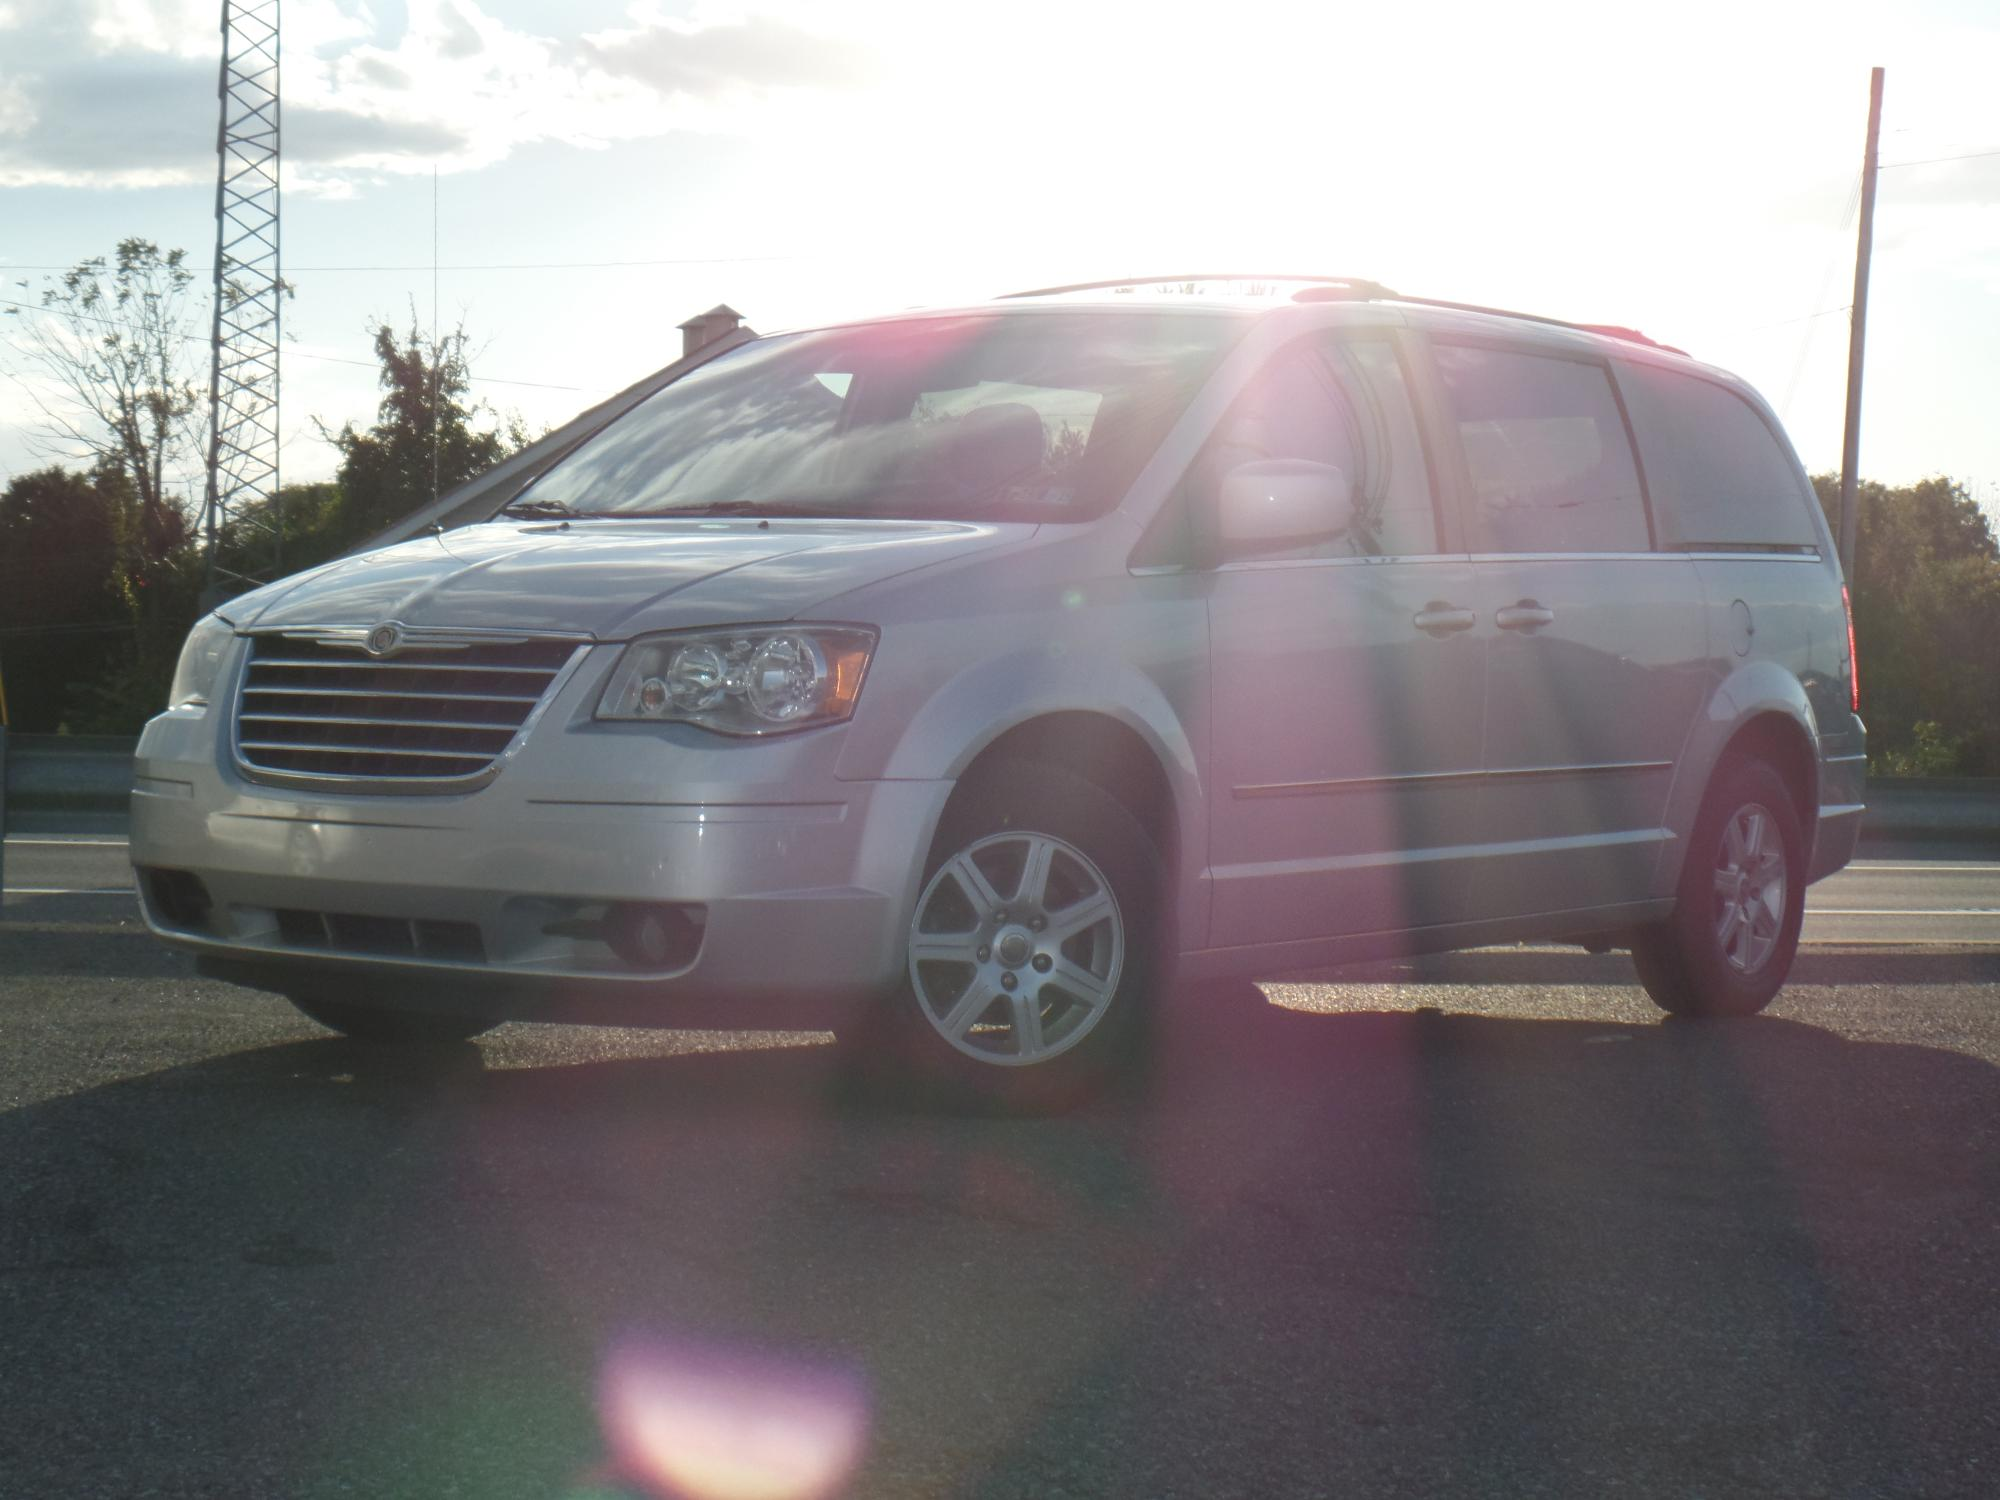 10-23-2018_2010_Chrysler_Town_and_Country_367943__1_.JPG